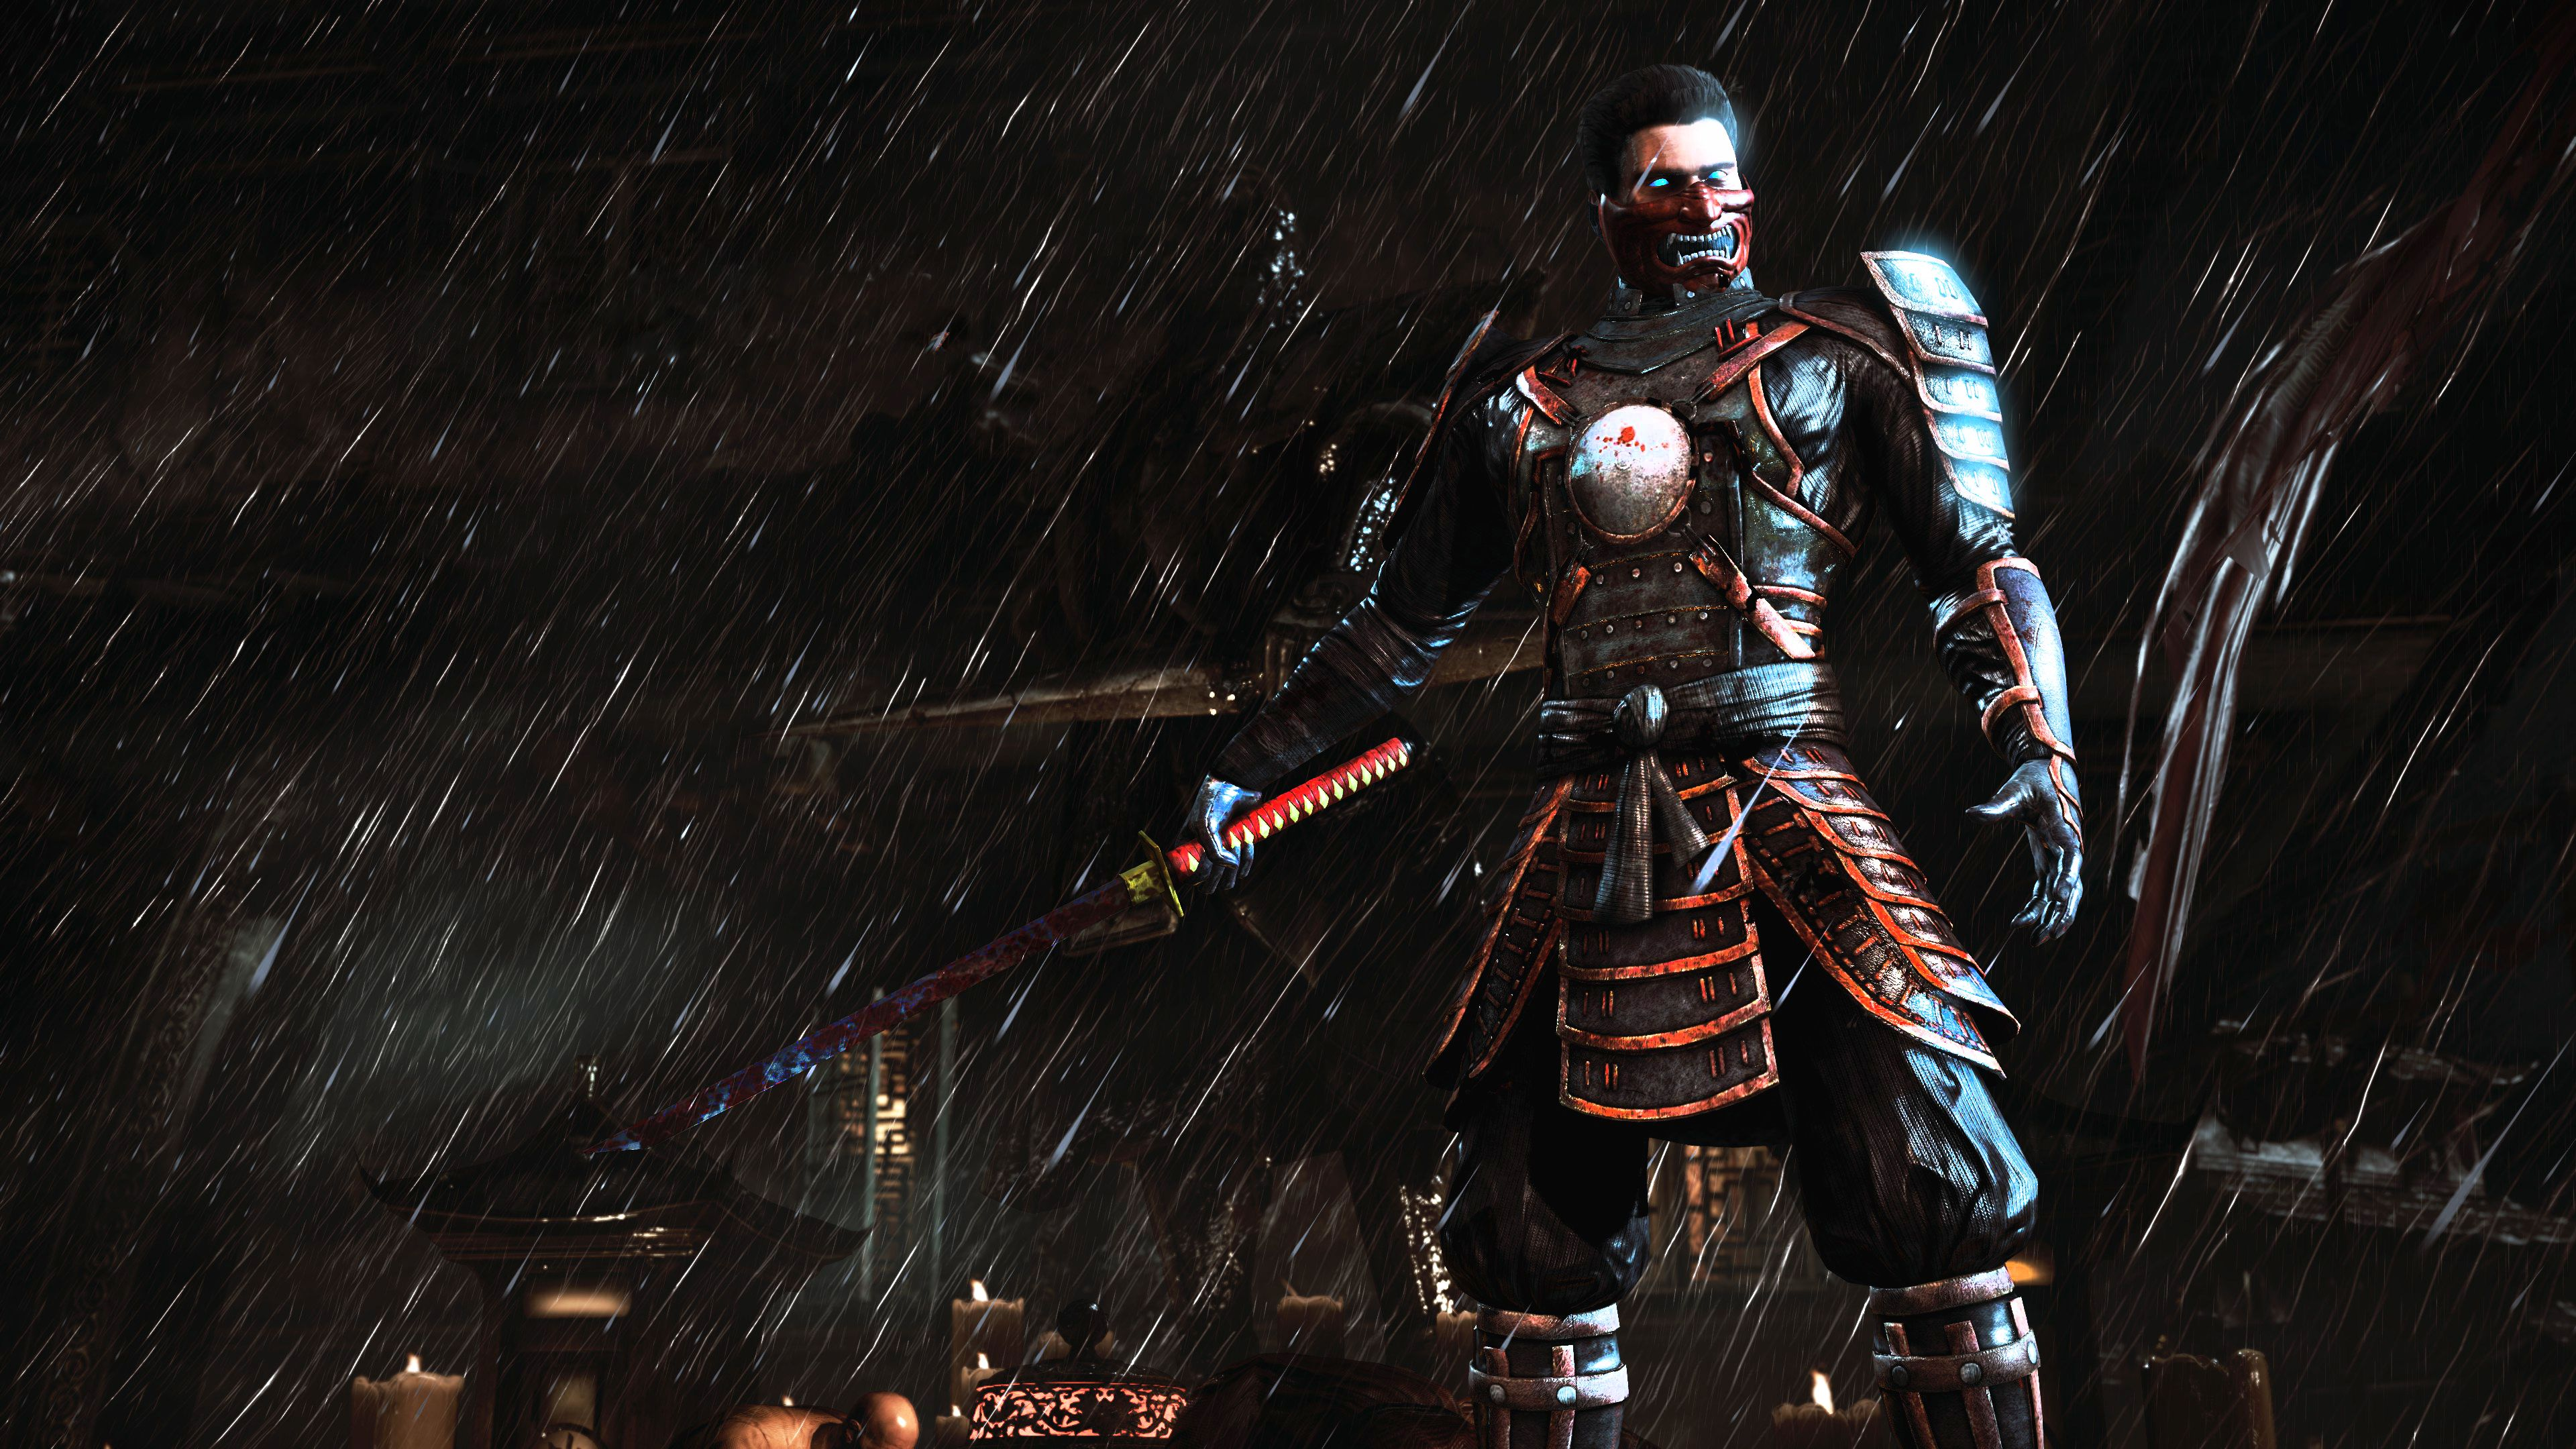 Deviantart More Like Mortal Kombat X Ronin Kenshi 2 4k By